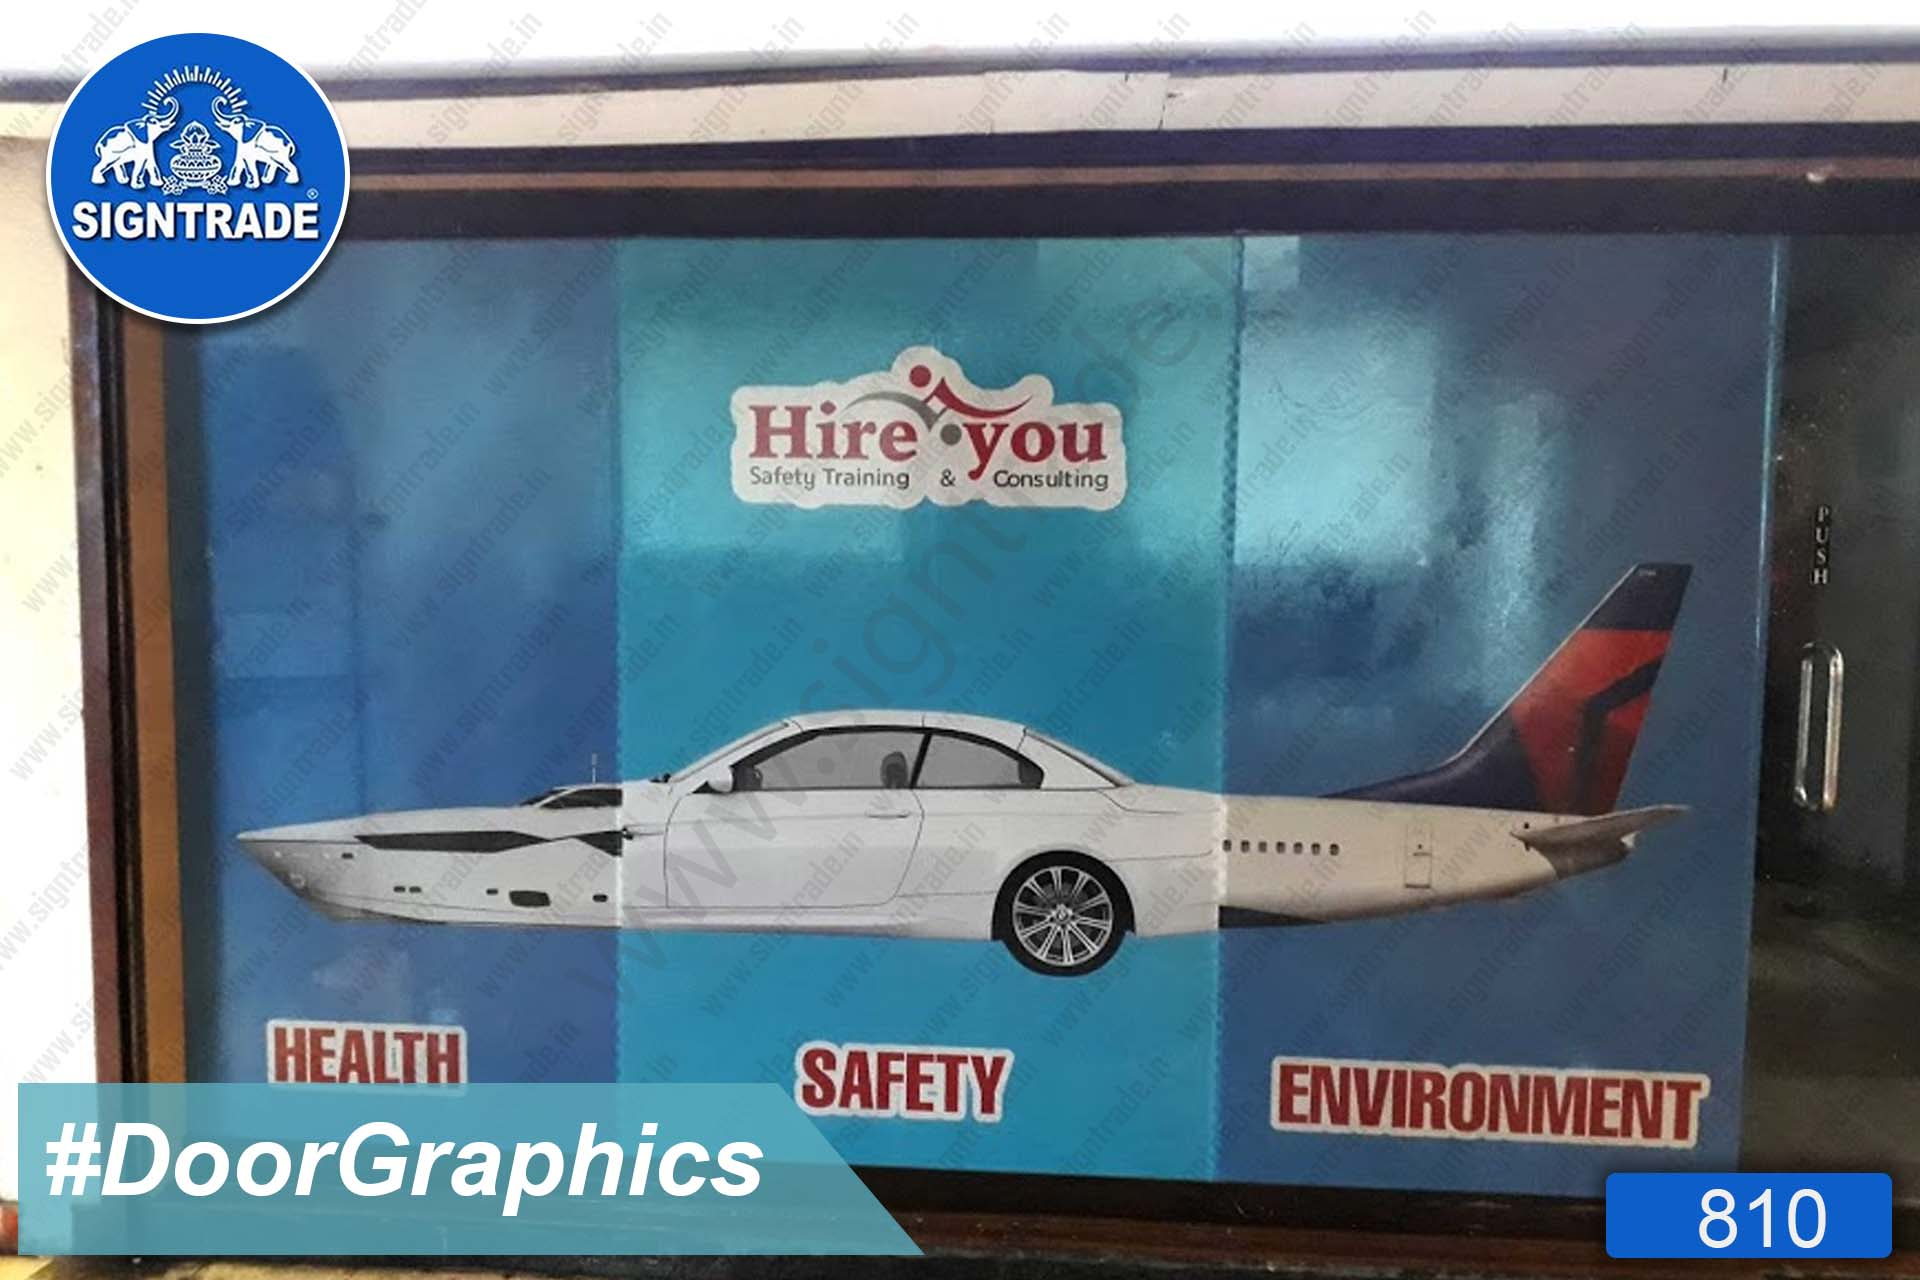 Wall Graphics - Hire You Safety Training & Consulting